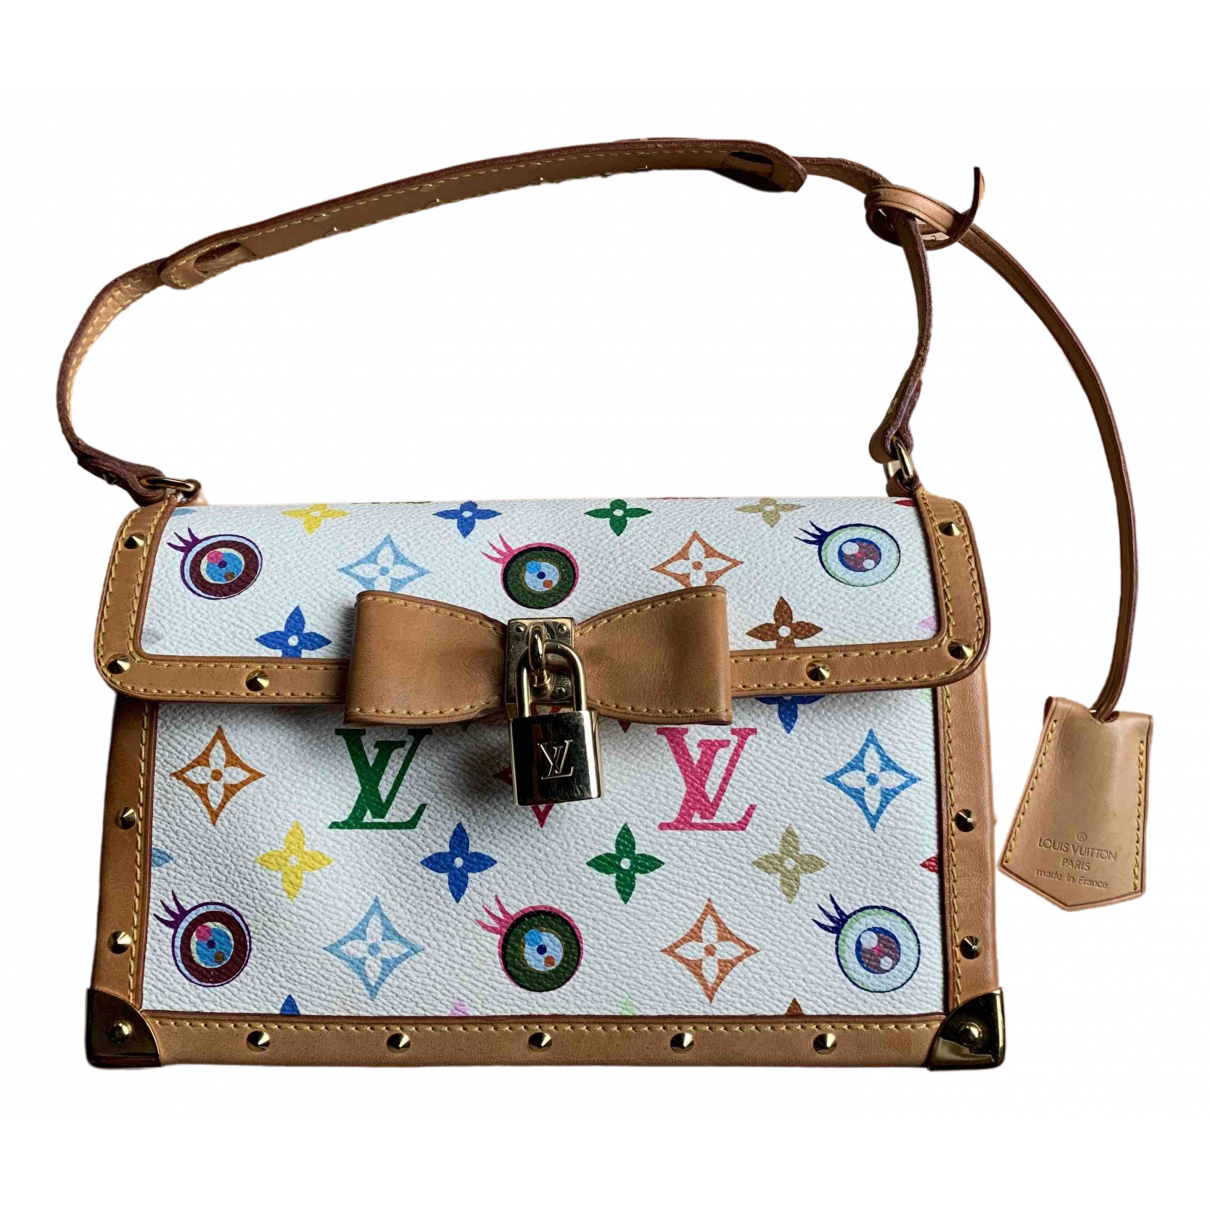 Louis Vuitton Eye Need You Handtasche in  Bunt Leinen